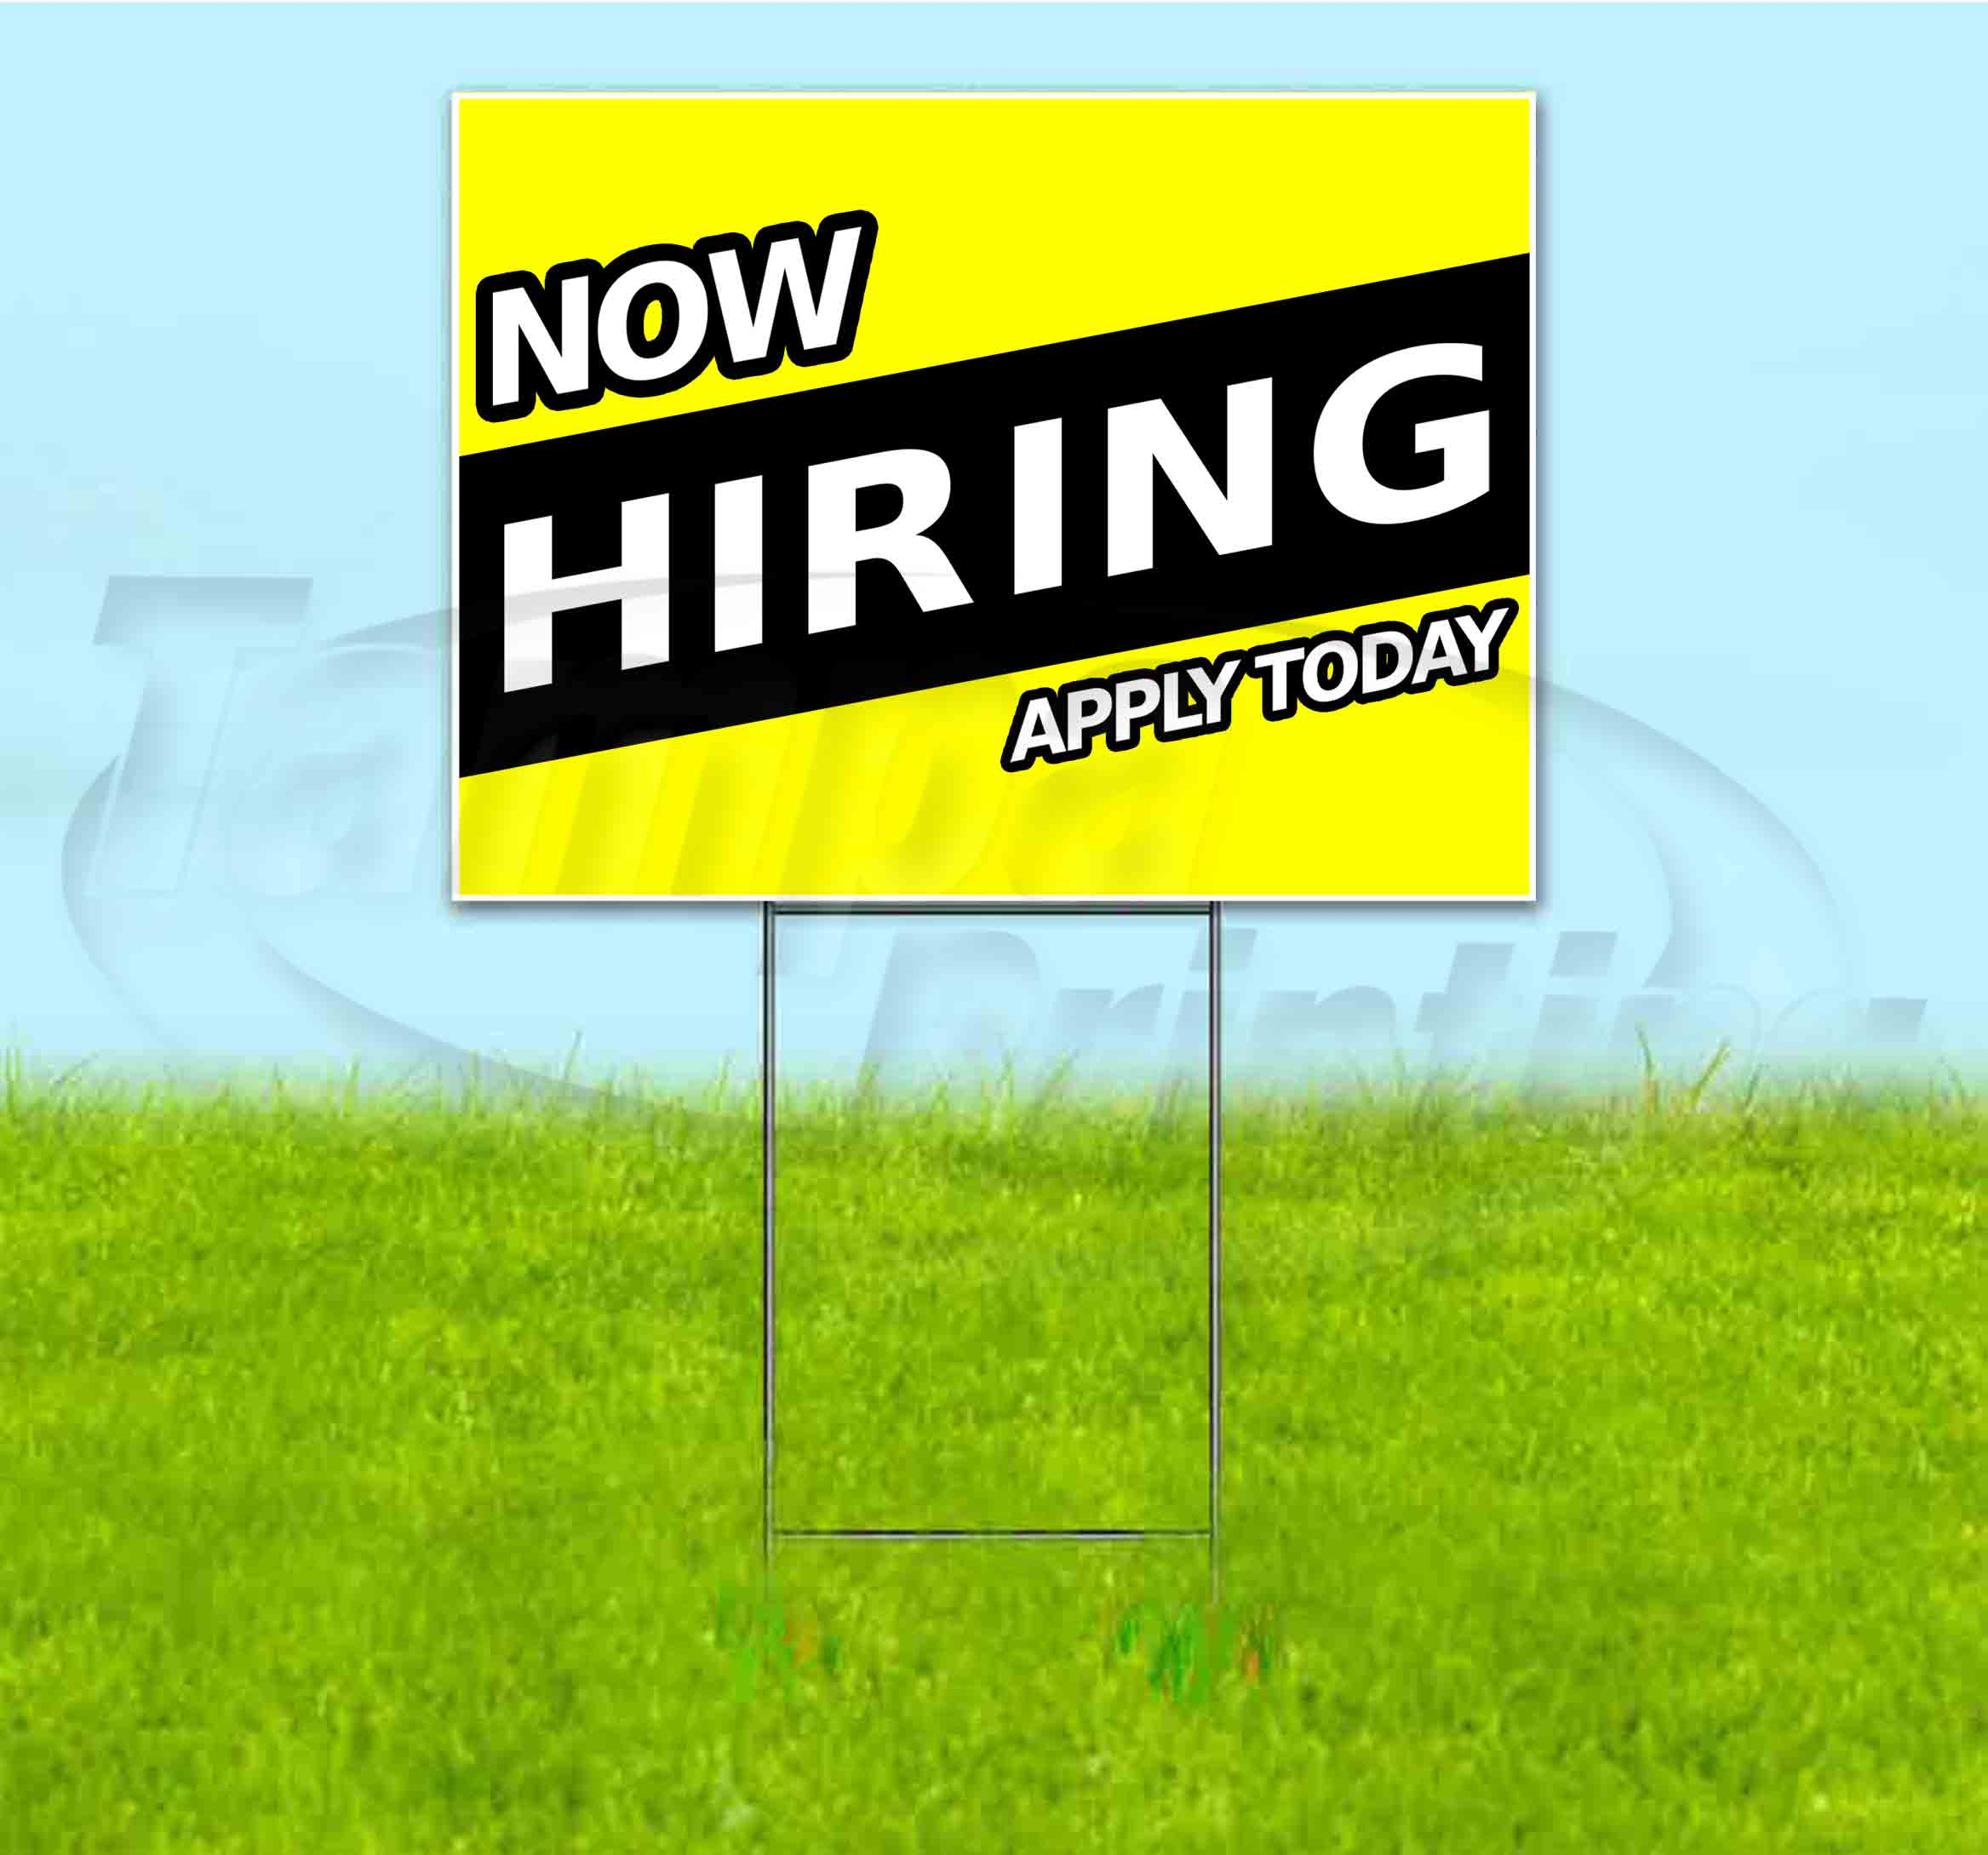 Now Hiring Apply Inside 18x12 CGSignLab 5-Pack Stripes White Double-Sided Weather-Resistant Yard Sign